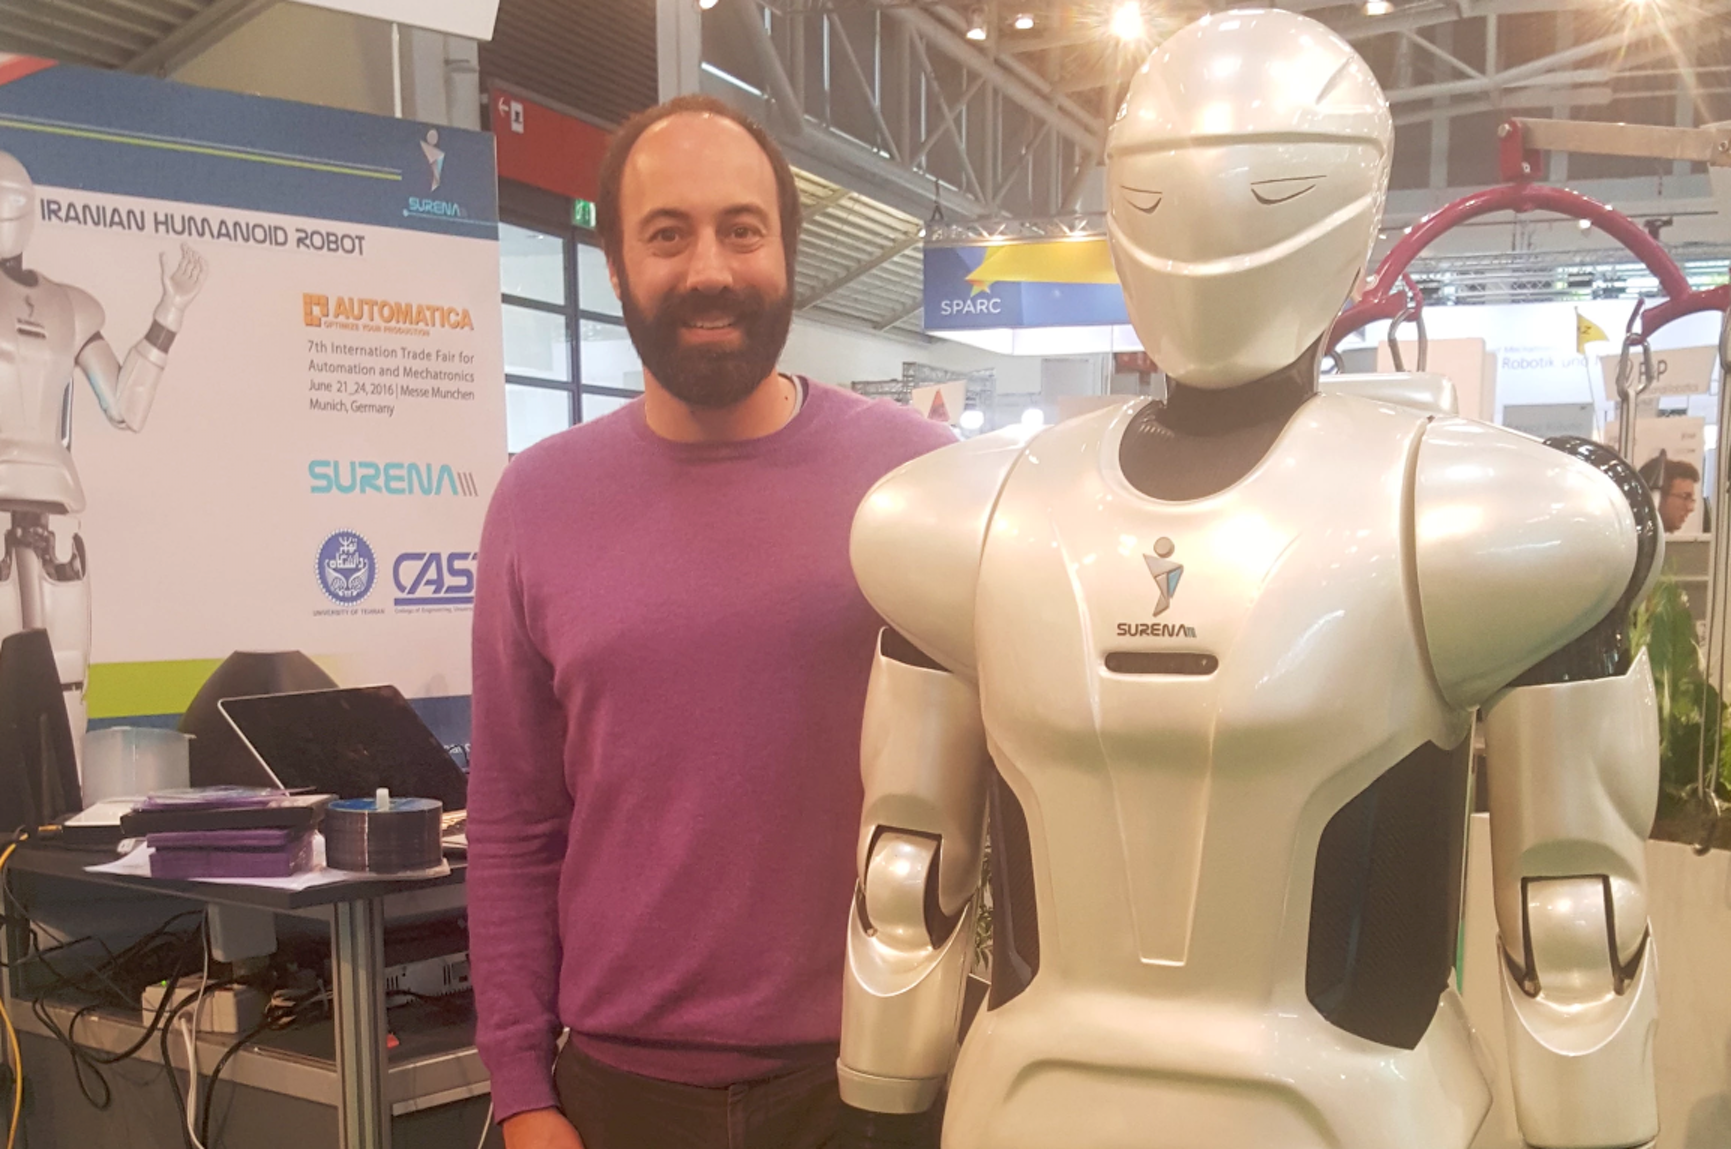 Ryan Calo and a colleague at a trade show in Germany.